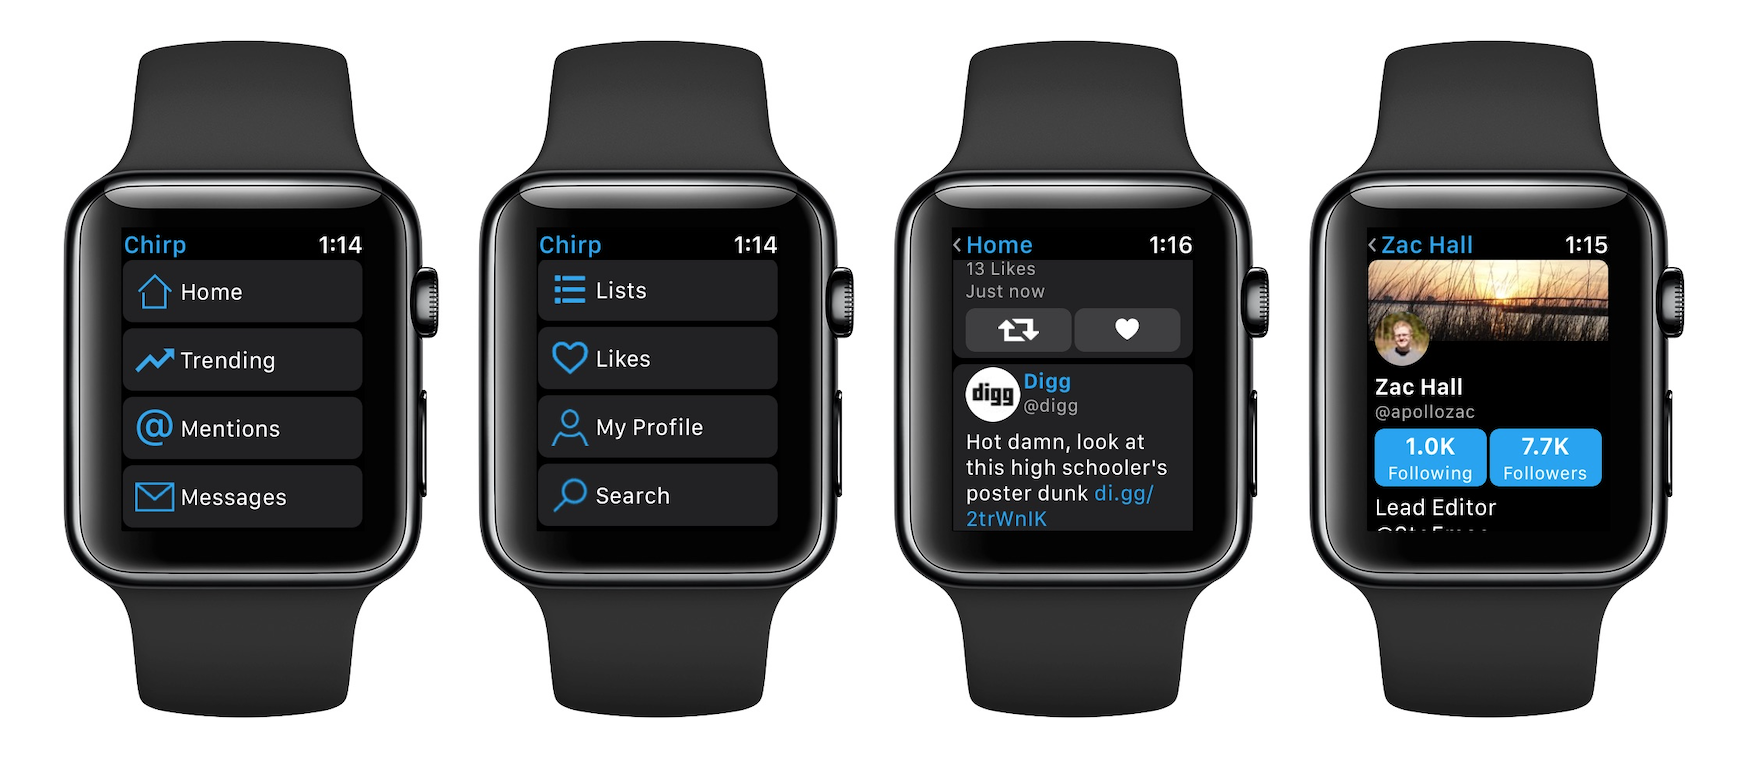 How to use apple watch 1 without iphone nearby